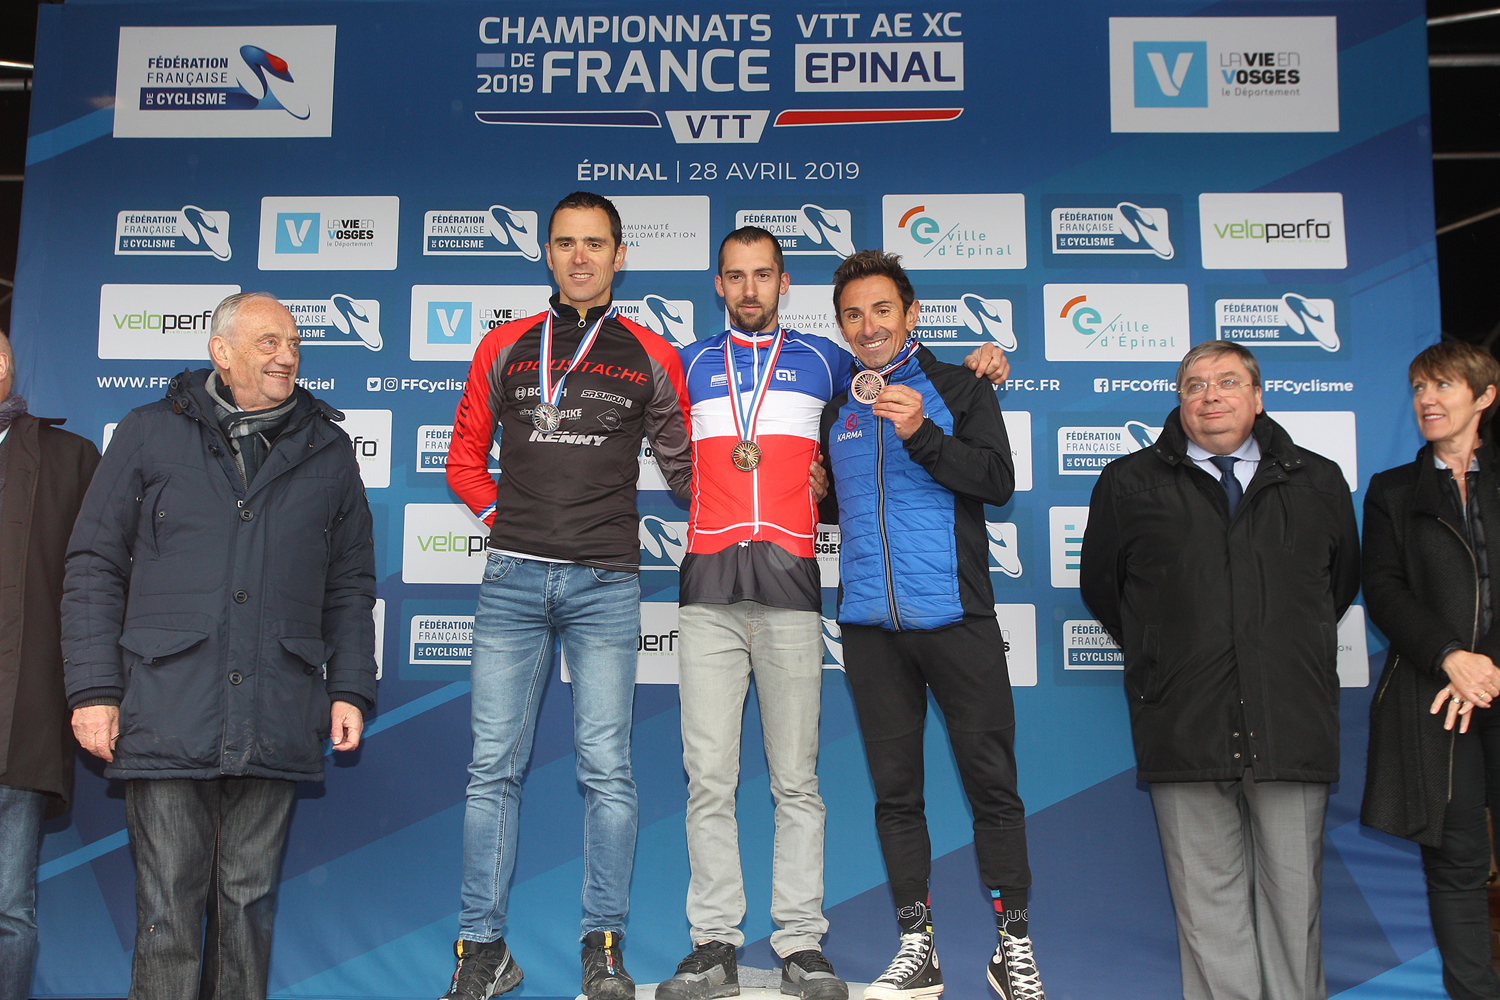 championnats france vttae xc 2019_photo FFC 1